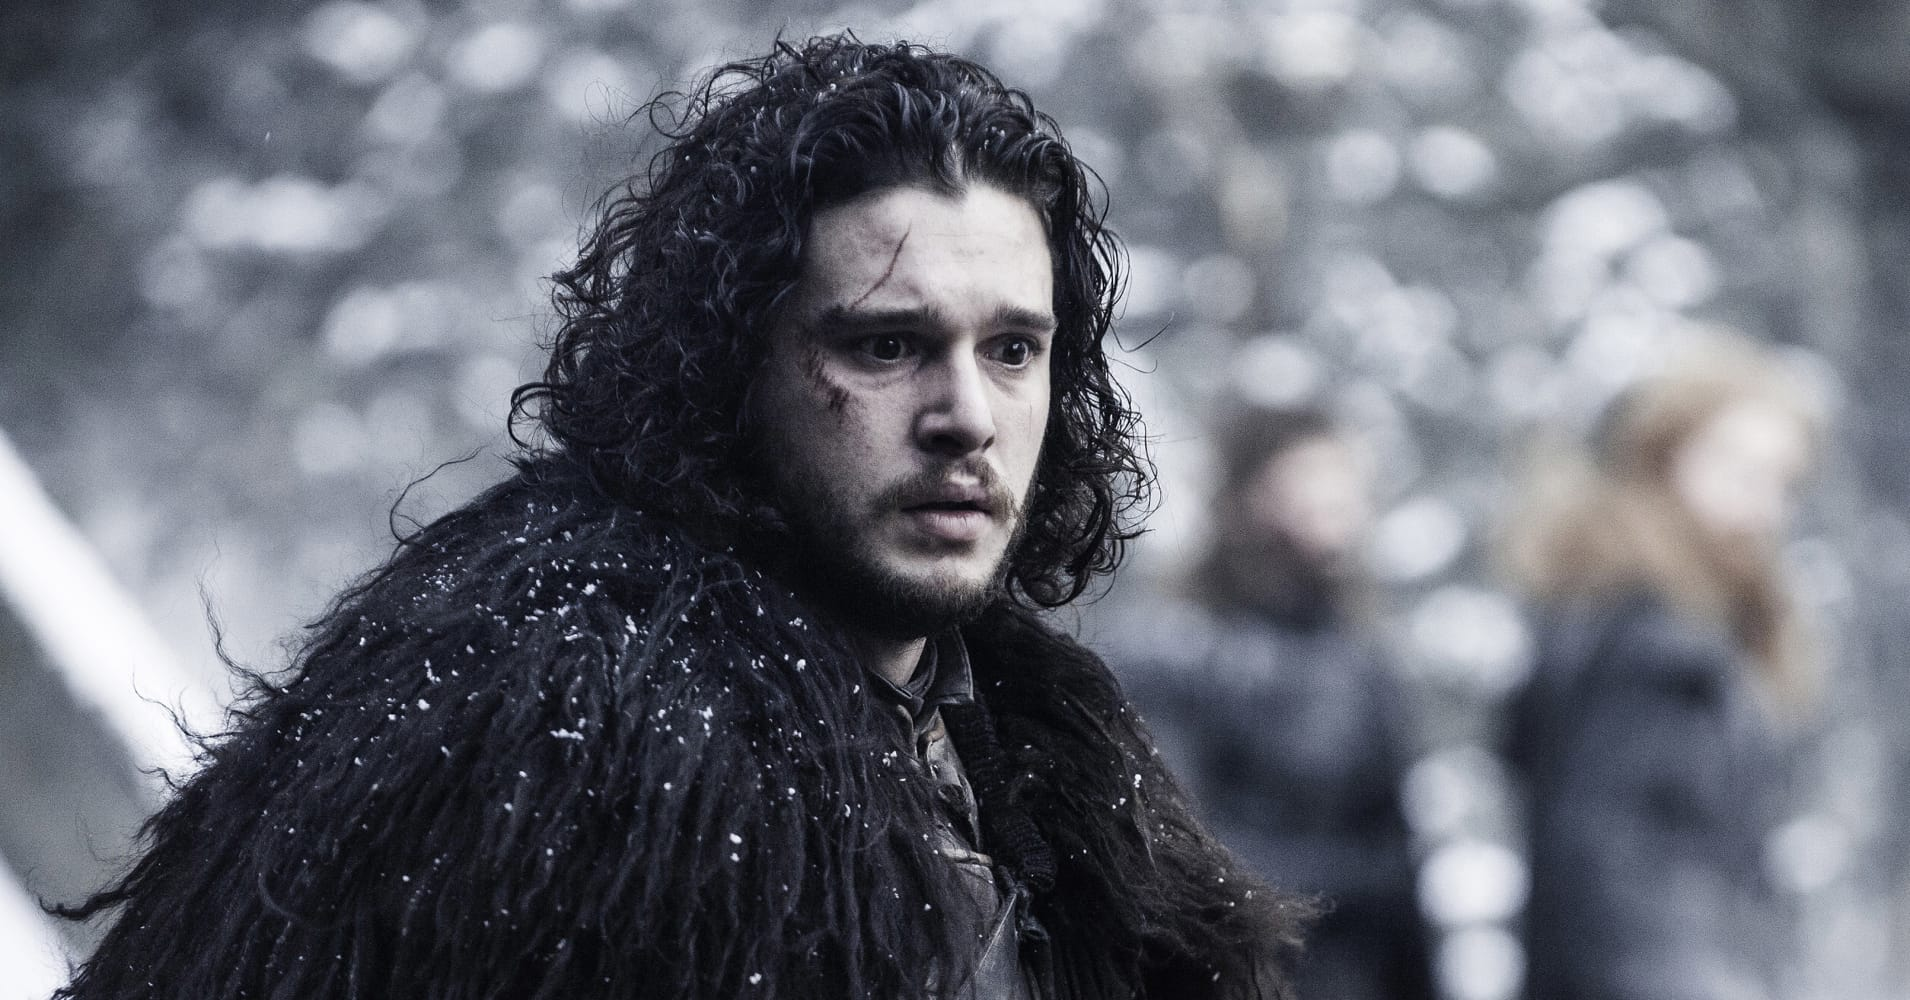 HBO is reportedly trying to get $250,000 in bitcoin to pay hackers who stole 'Game of Thrones' scripts